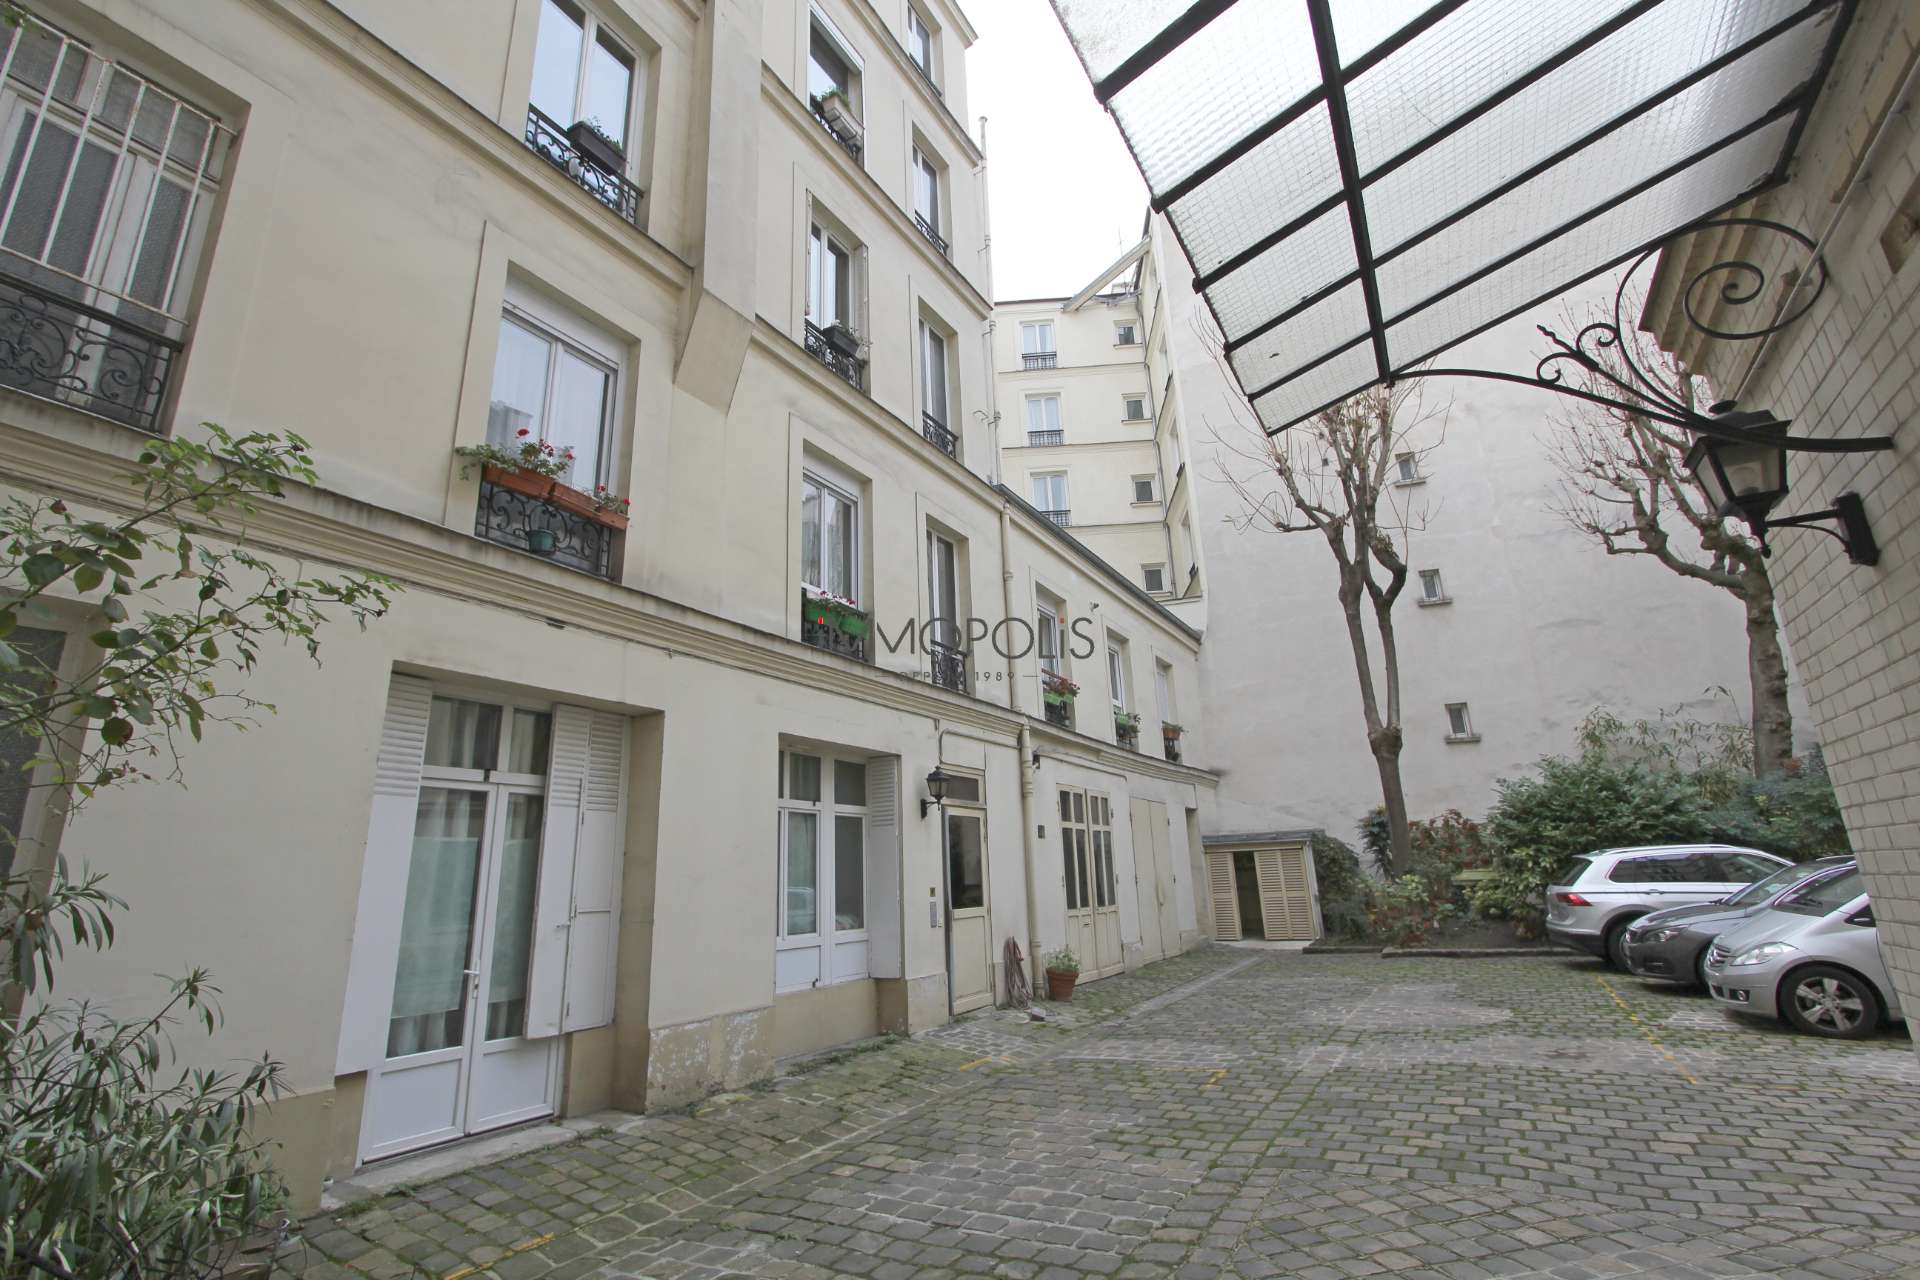 Europe district (rue Clapeyron in the 8th arrondissement), Legally laudable studio of 9.88 m² Law Carrez located in a beautiful well maintained building 9